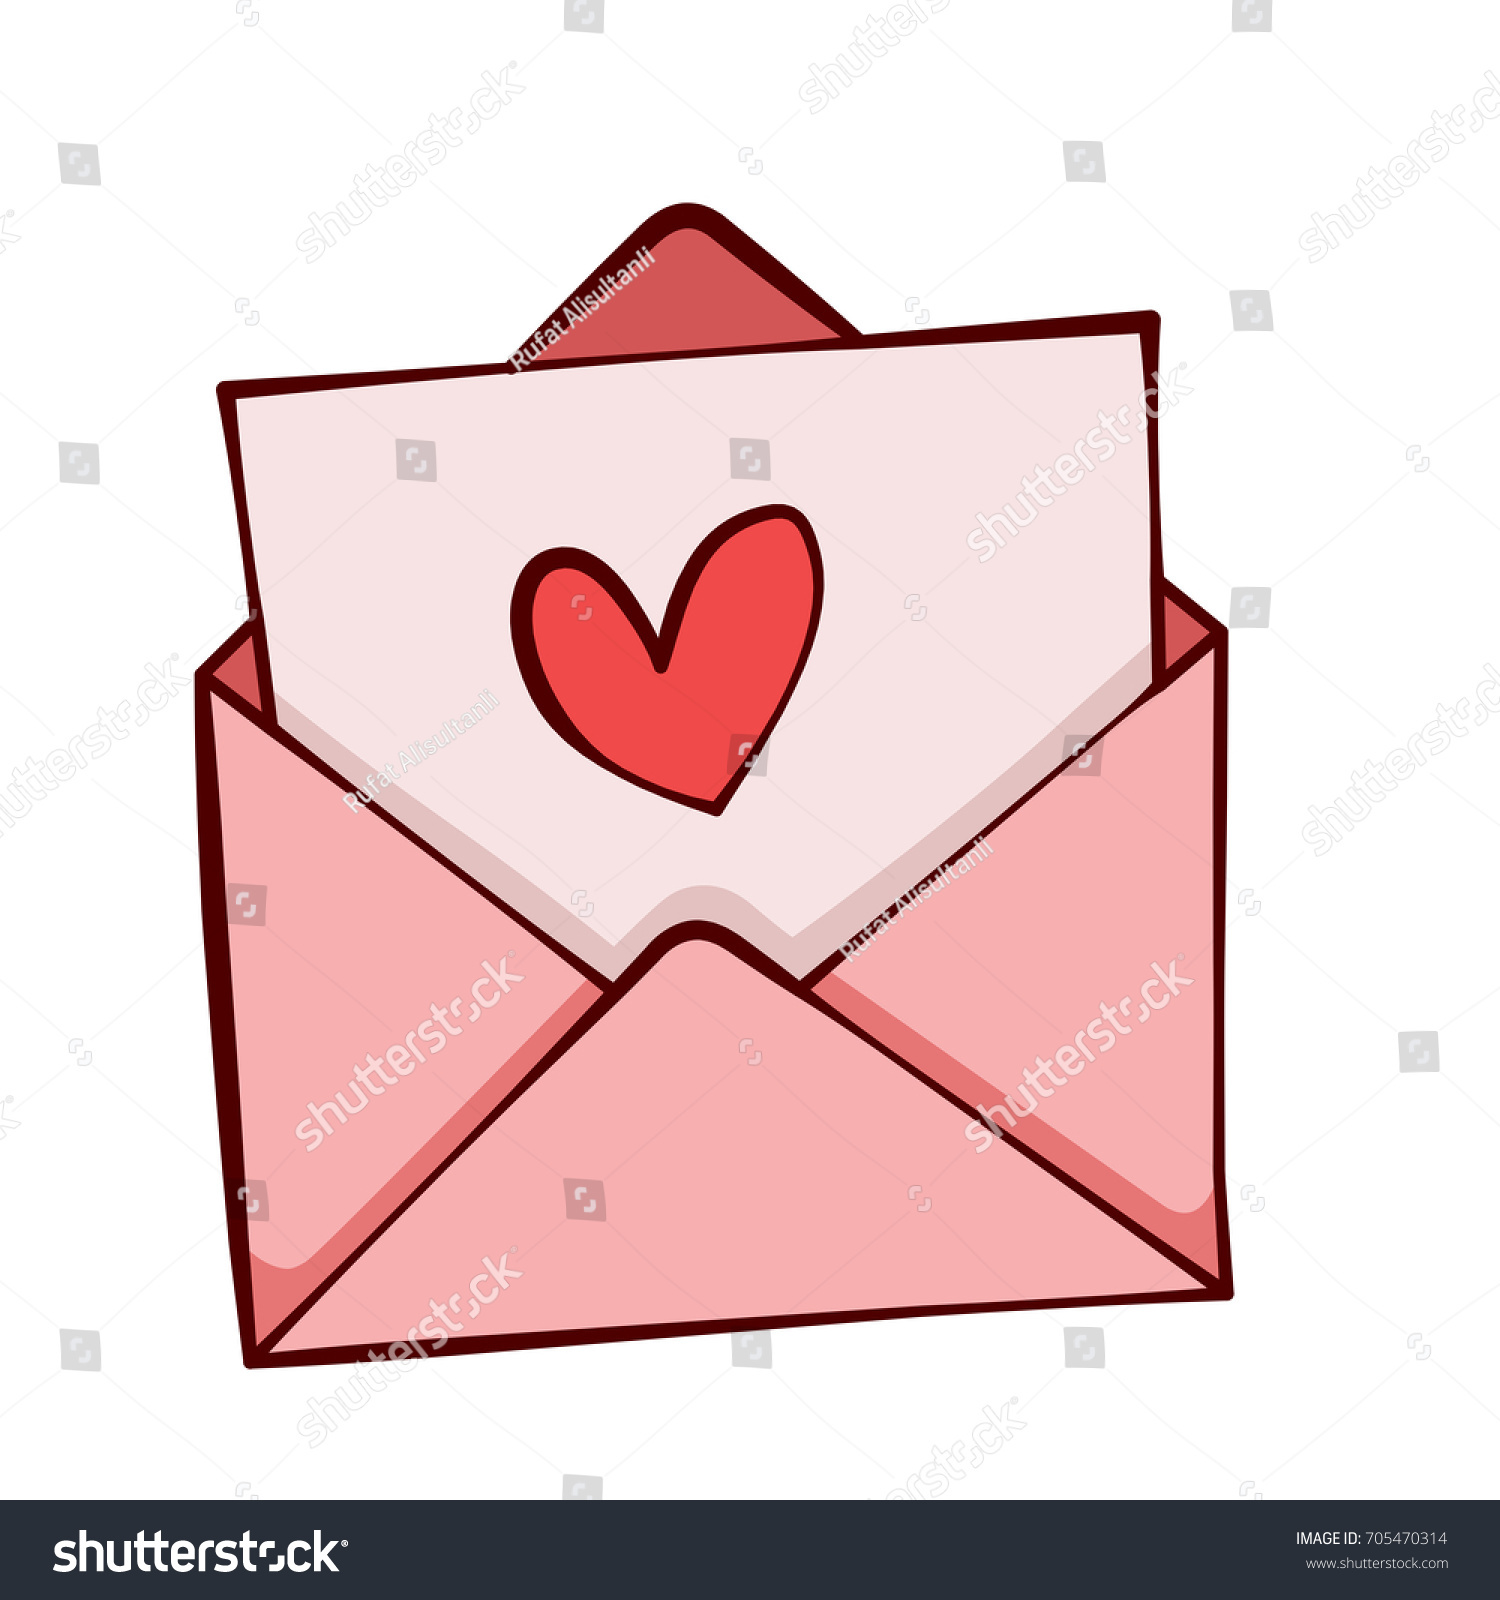 Envelope with heart